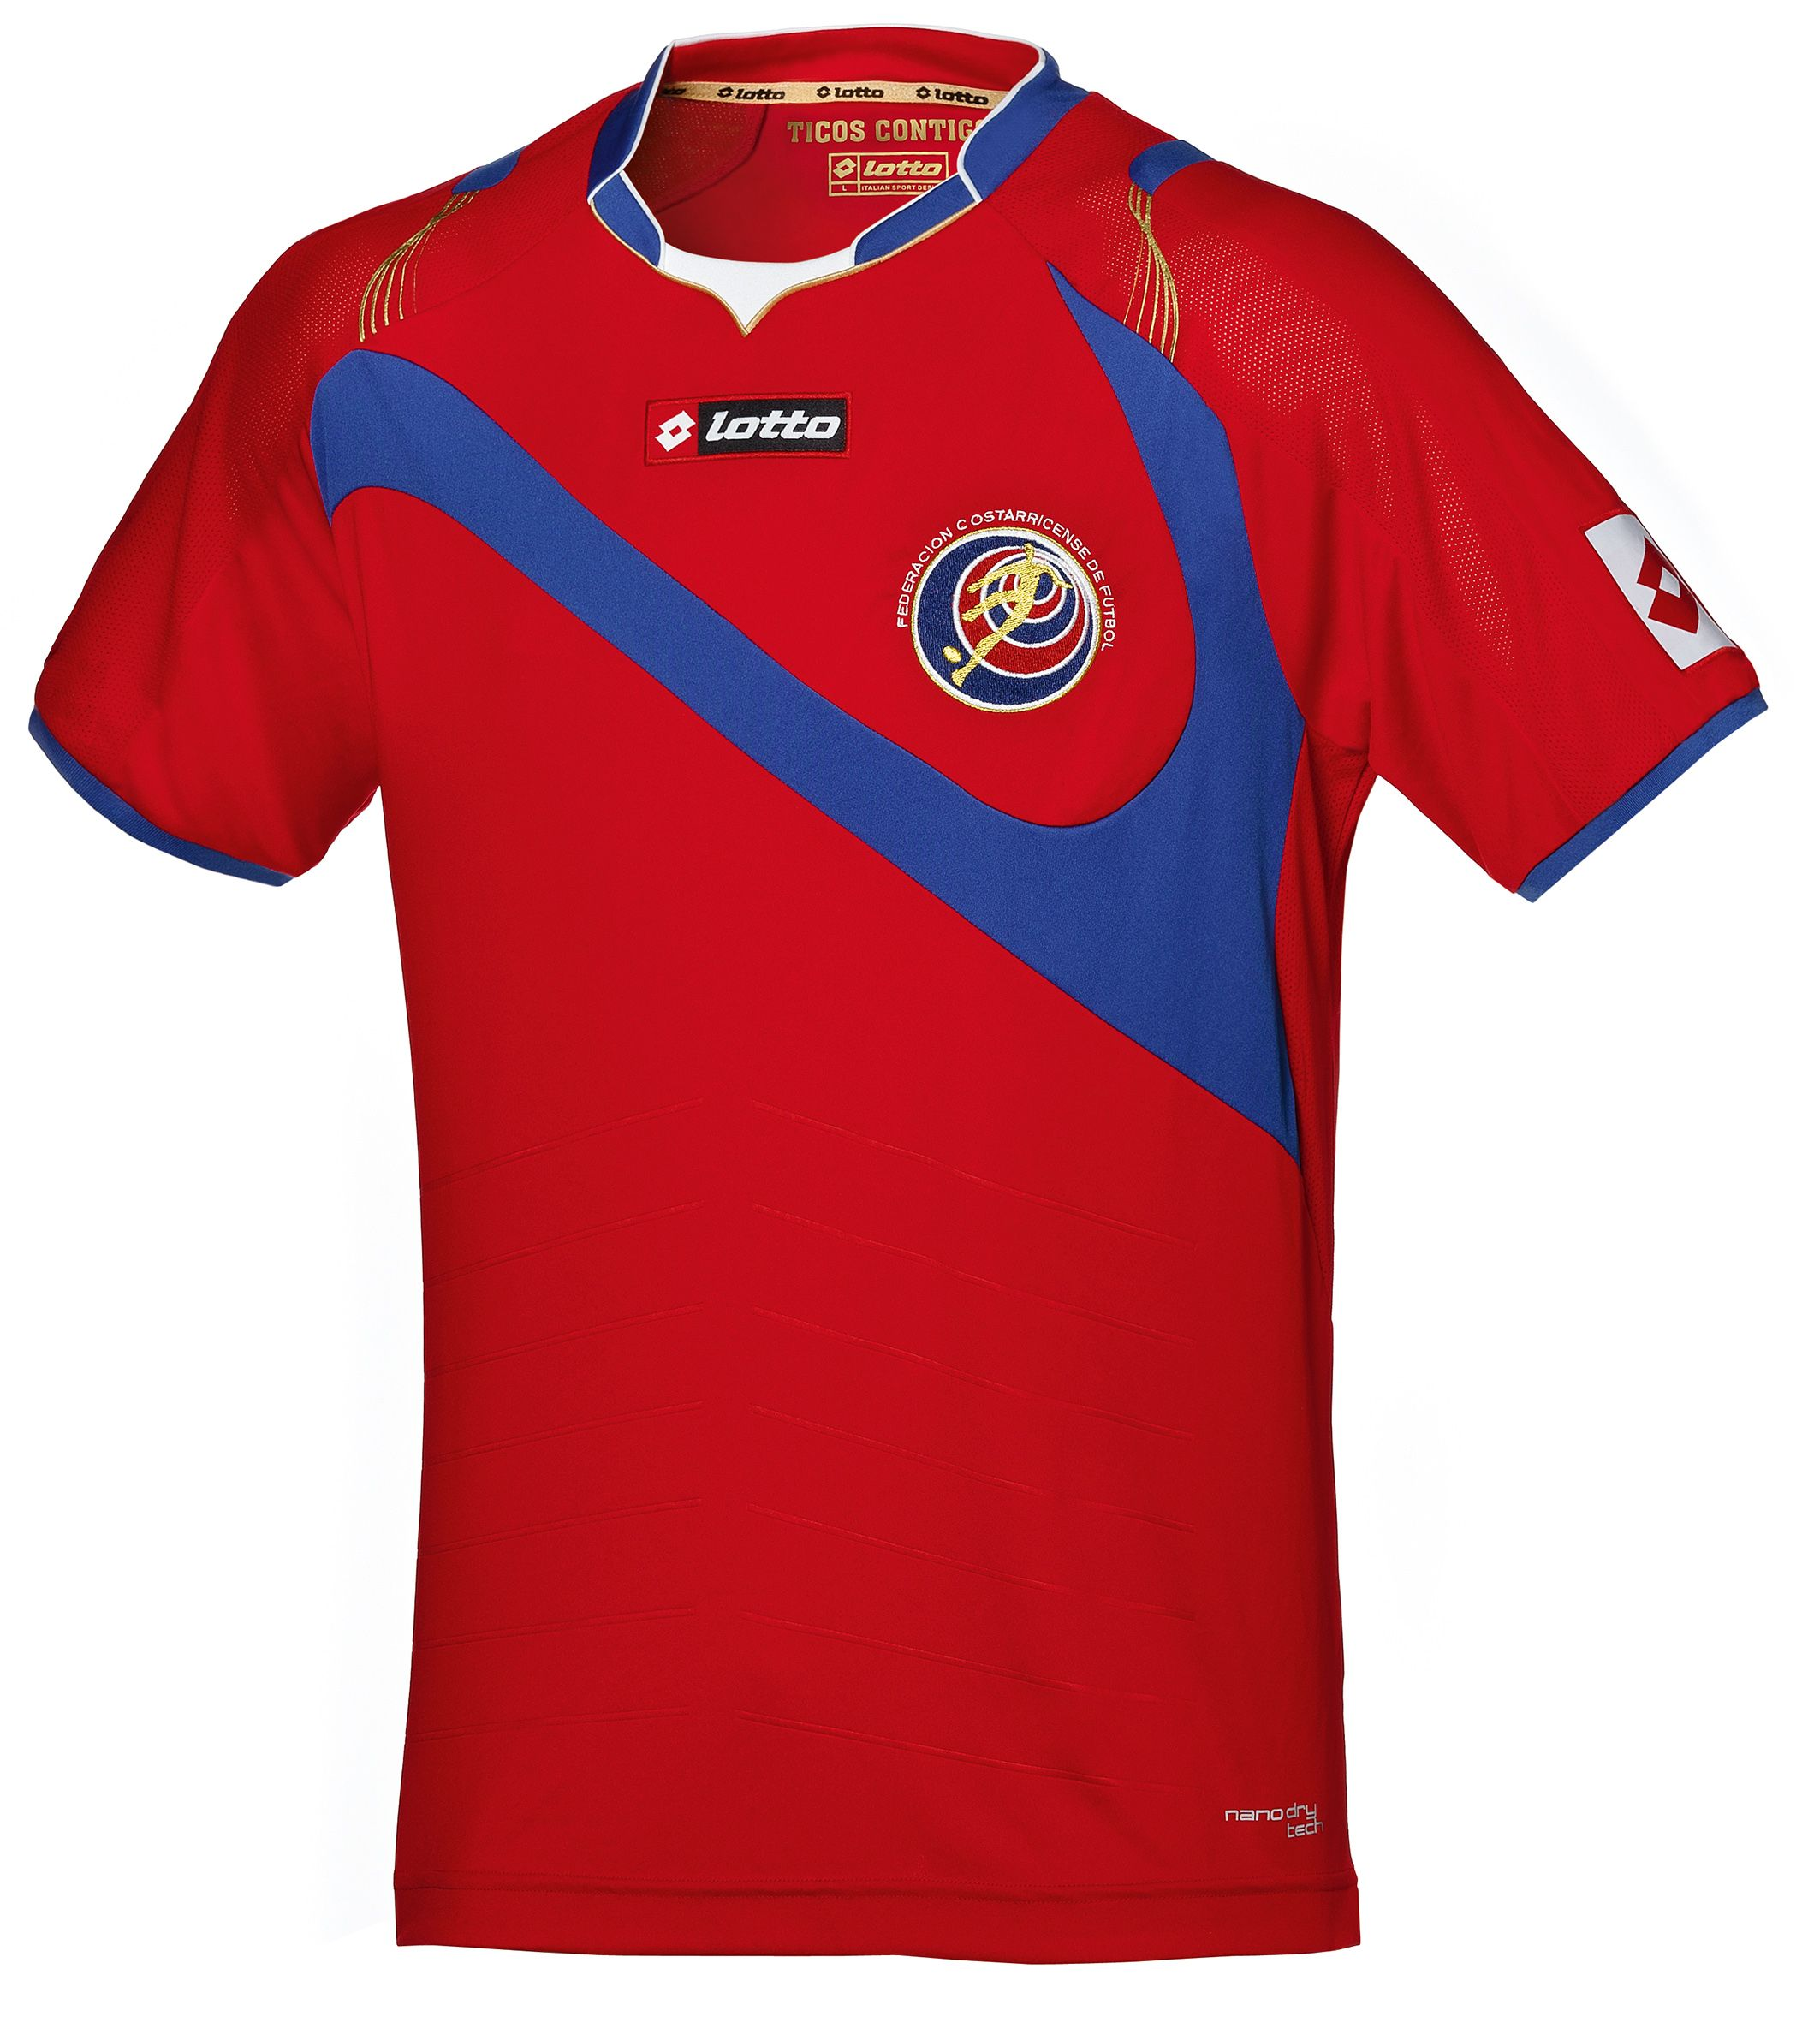 8dd62619e Costa Rica Jersey World Cup 2014